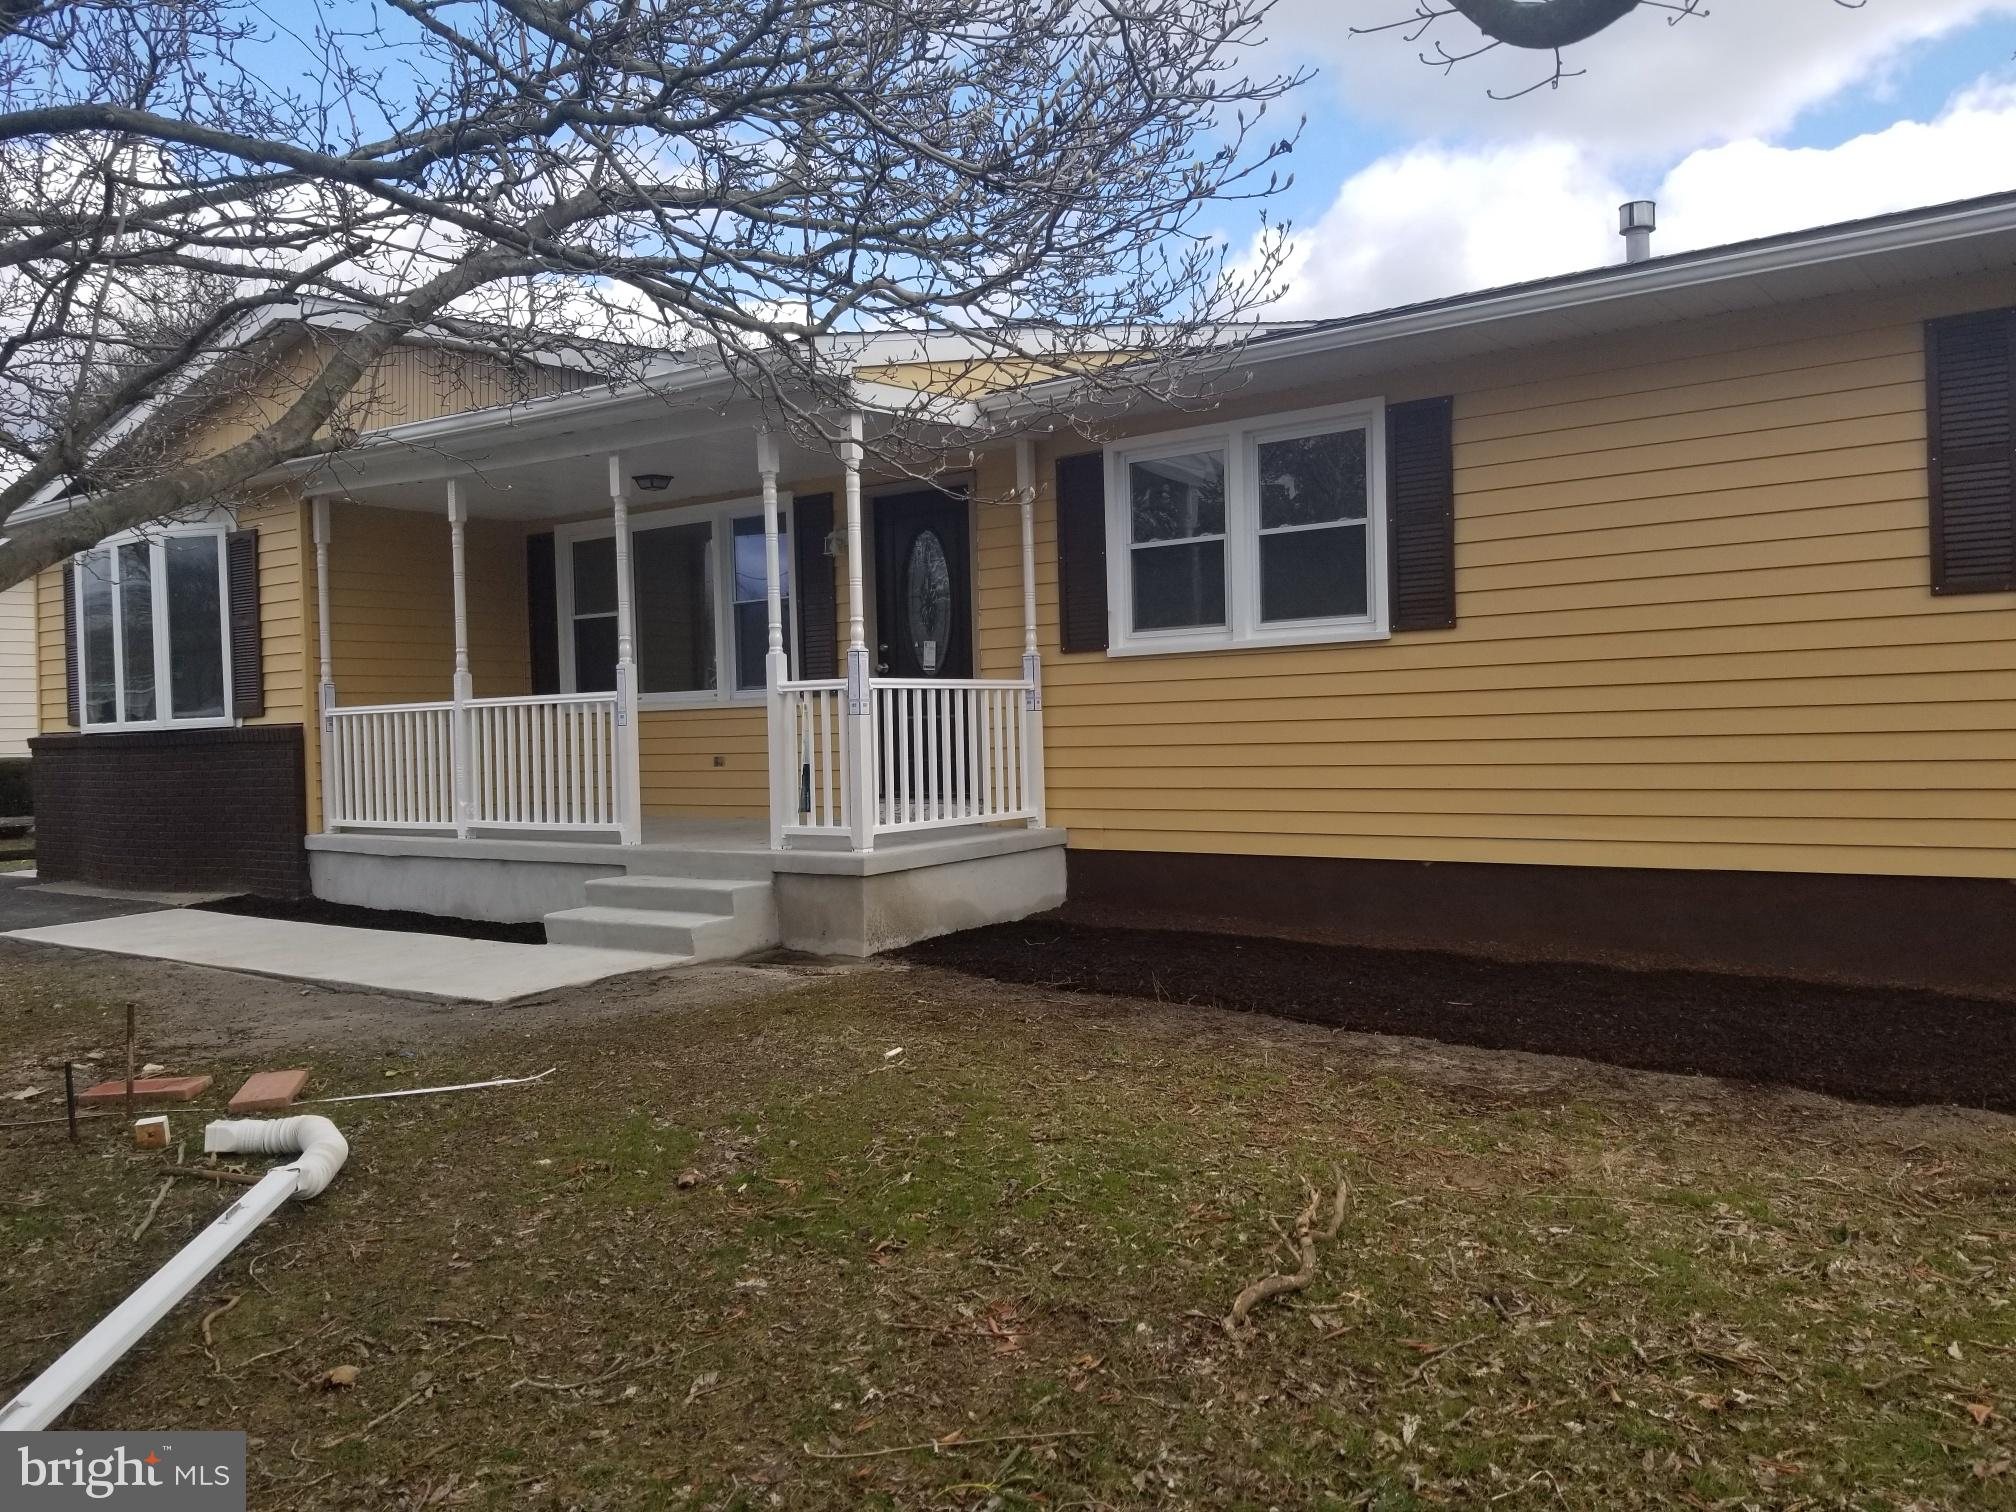 7 HUNTER DRIVE, NEWFIELD, NJ 08344